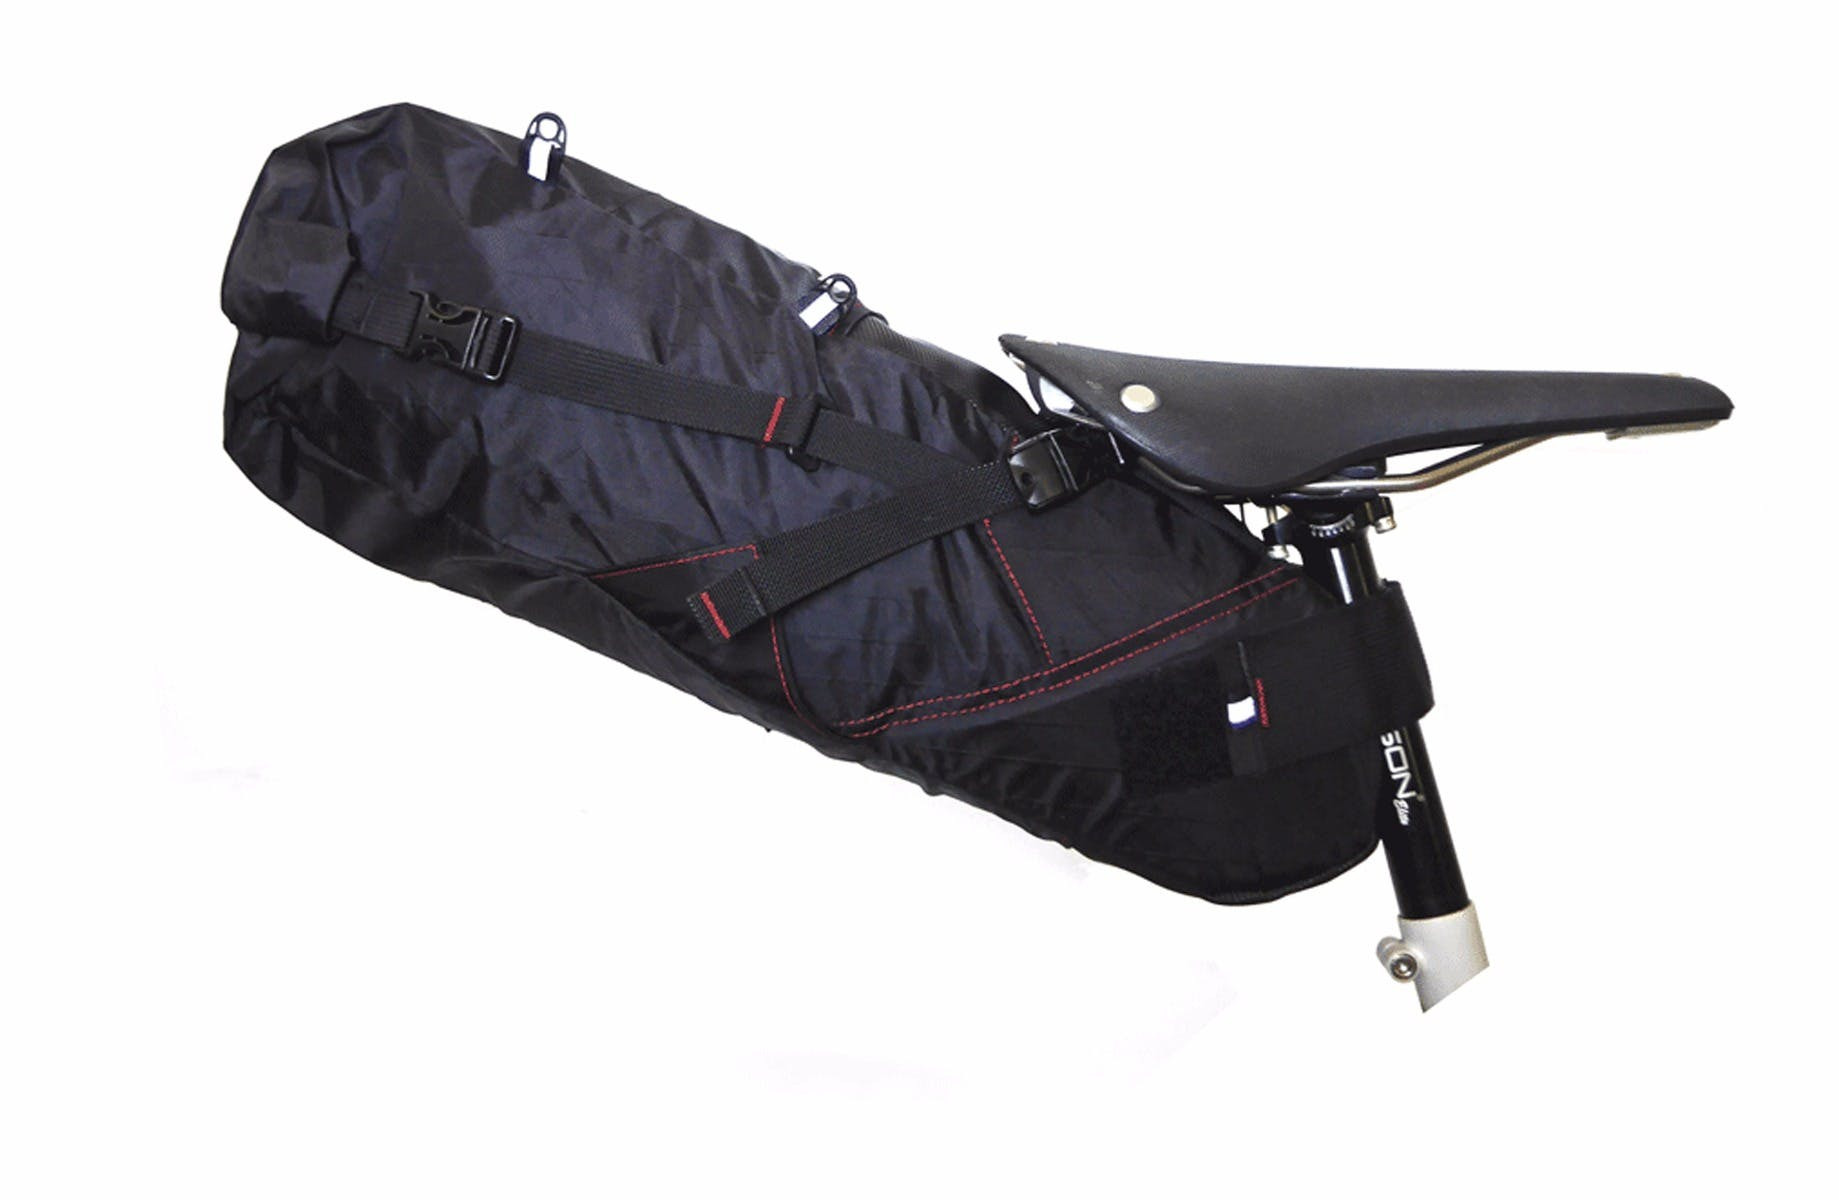 Pika Seat Pack | Revelate Designs – Pannier